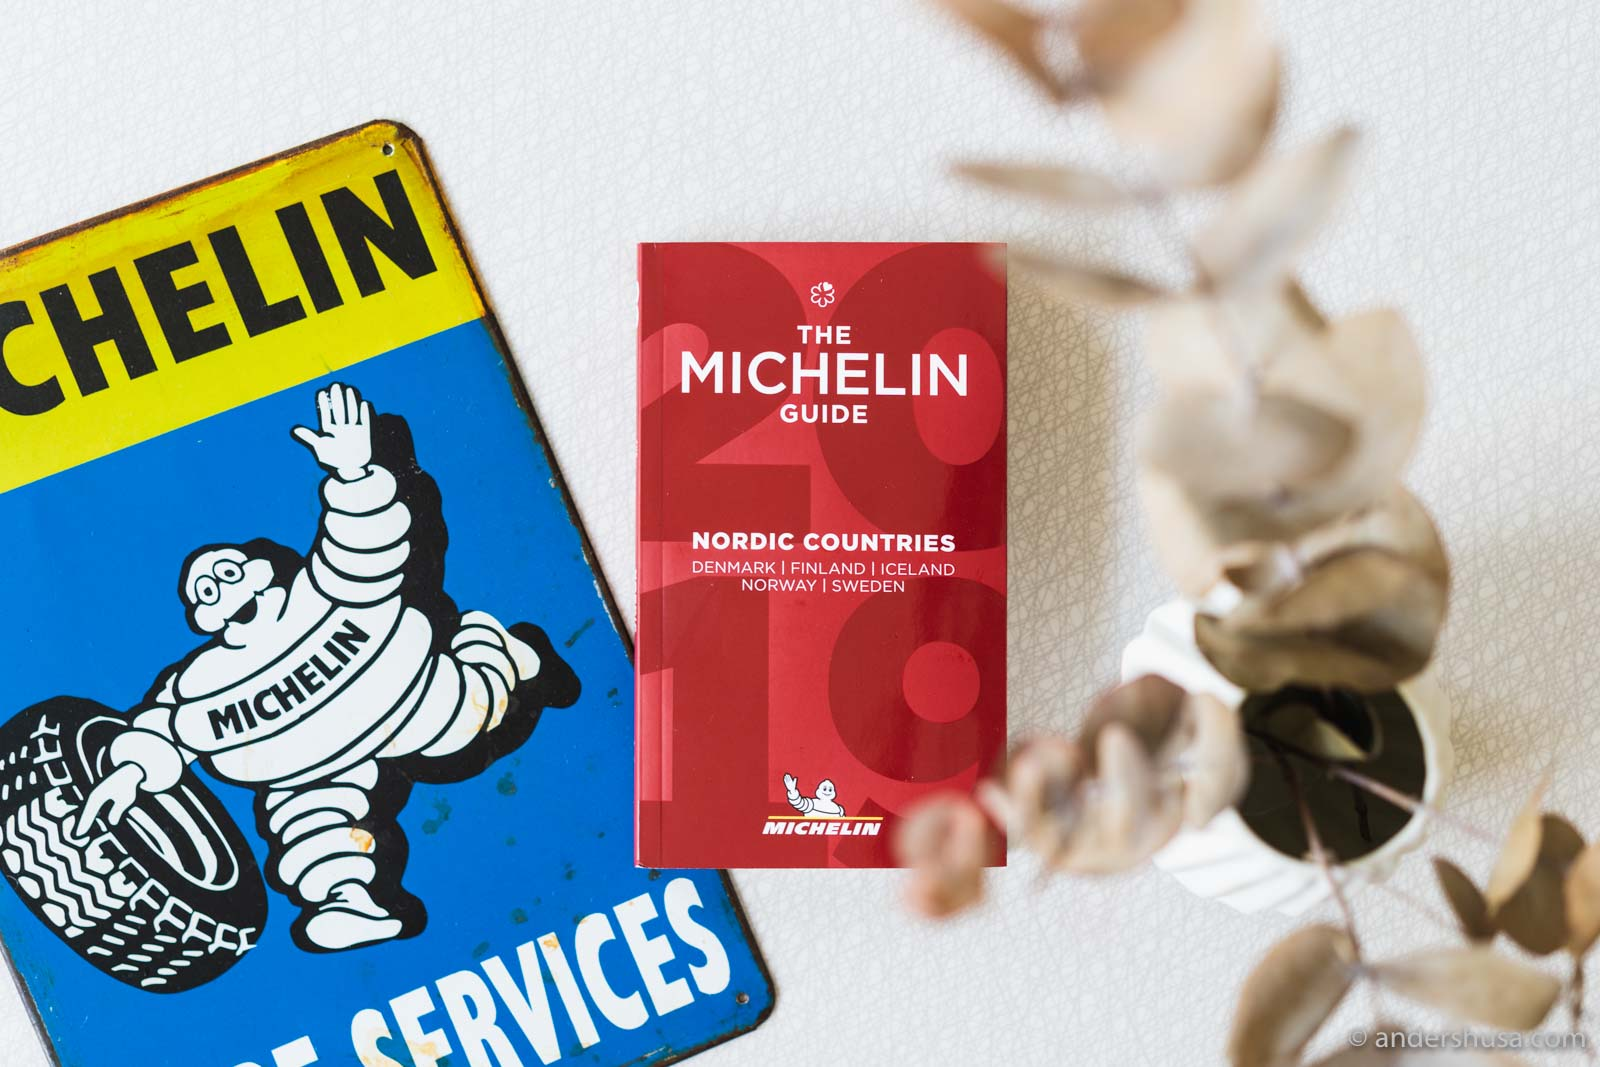 michelin guide nordic